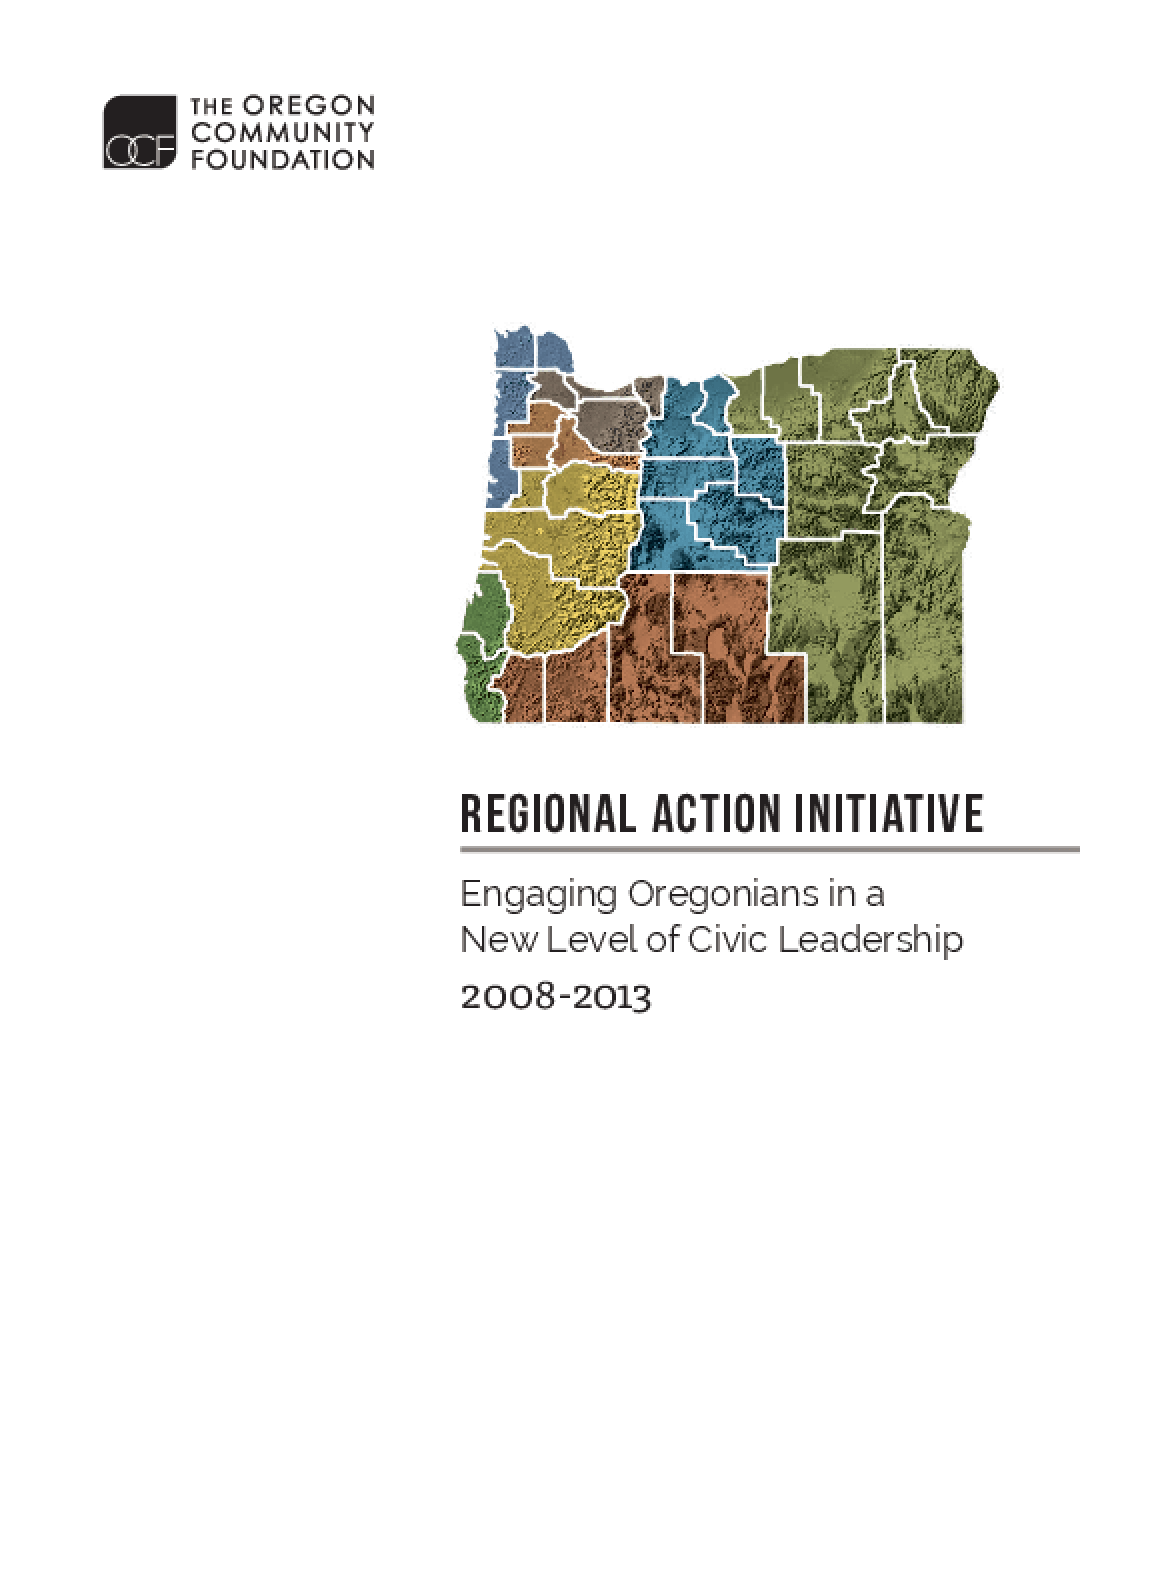 Regional Action Initiative: Engaging Oregonians in a New Level of Civic Leadership 2008-2013